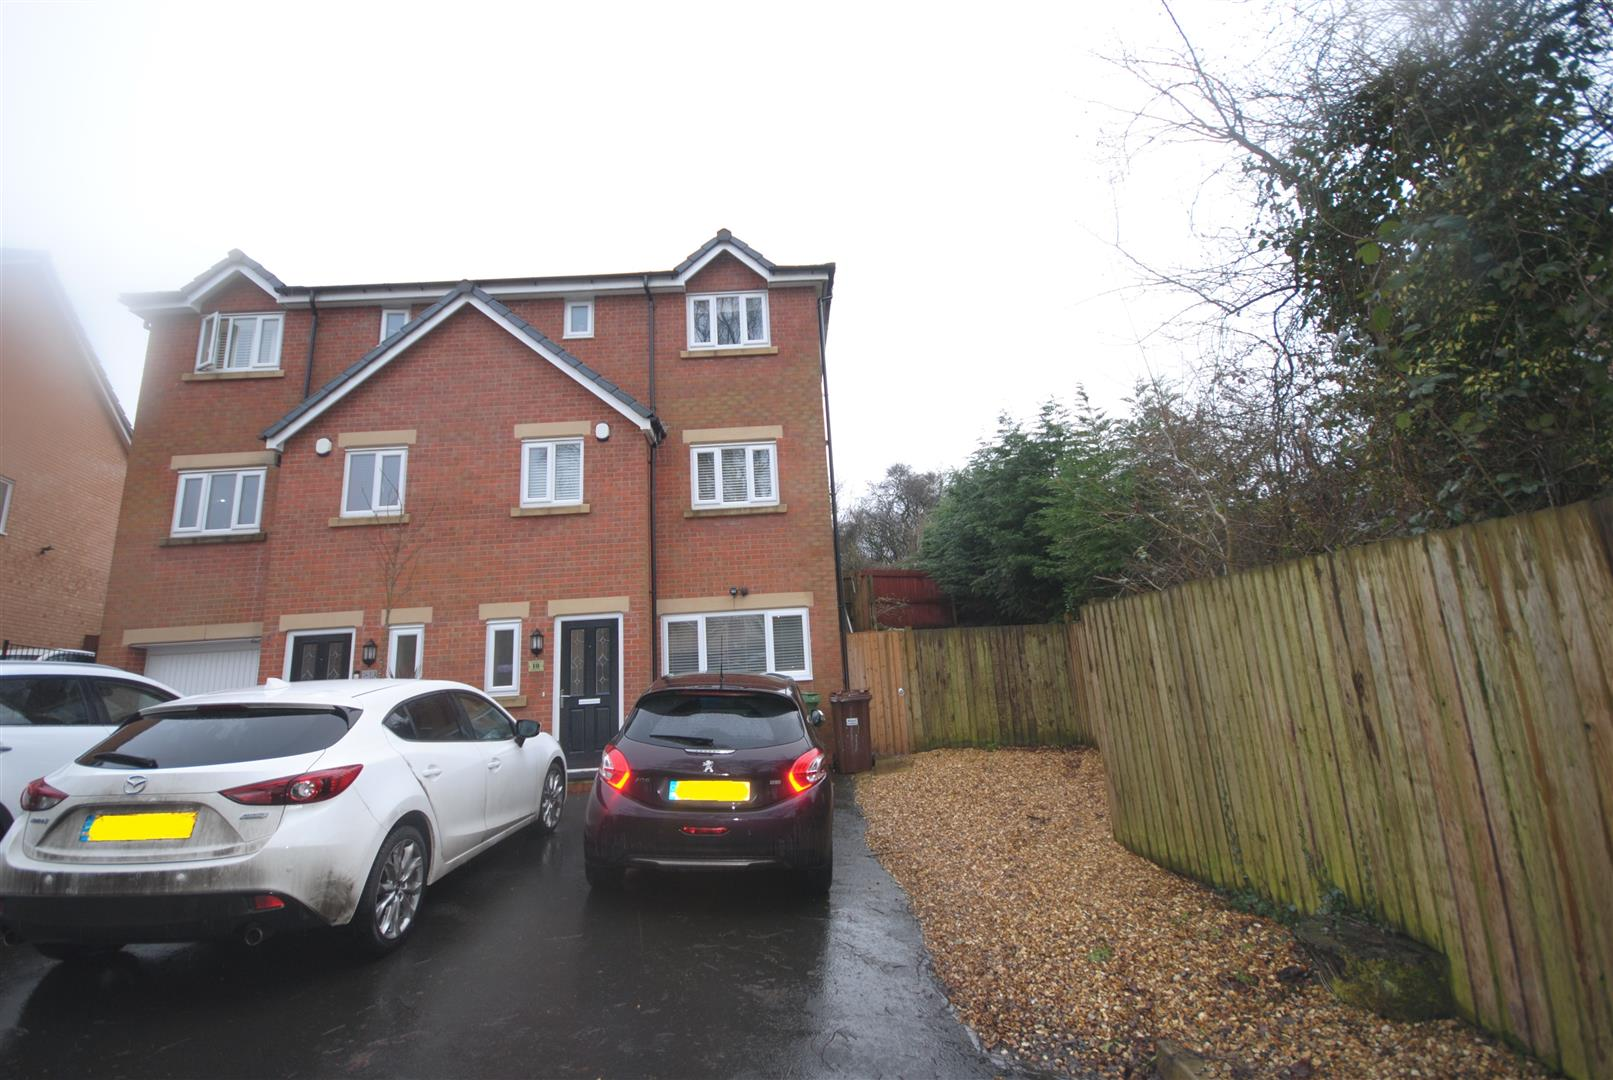 3 Bedrooms Semi Detached House for sale in Bradley Close, Standish, Wigan